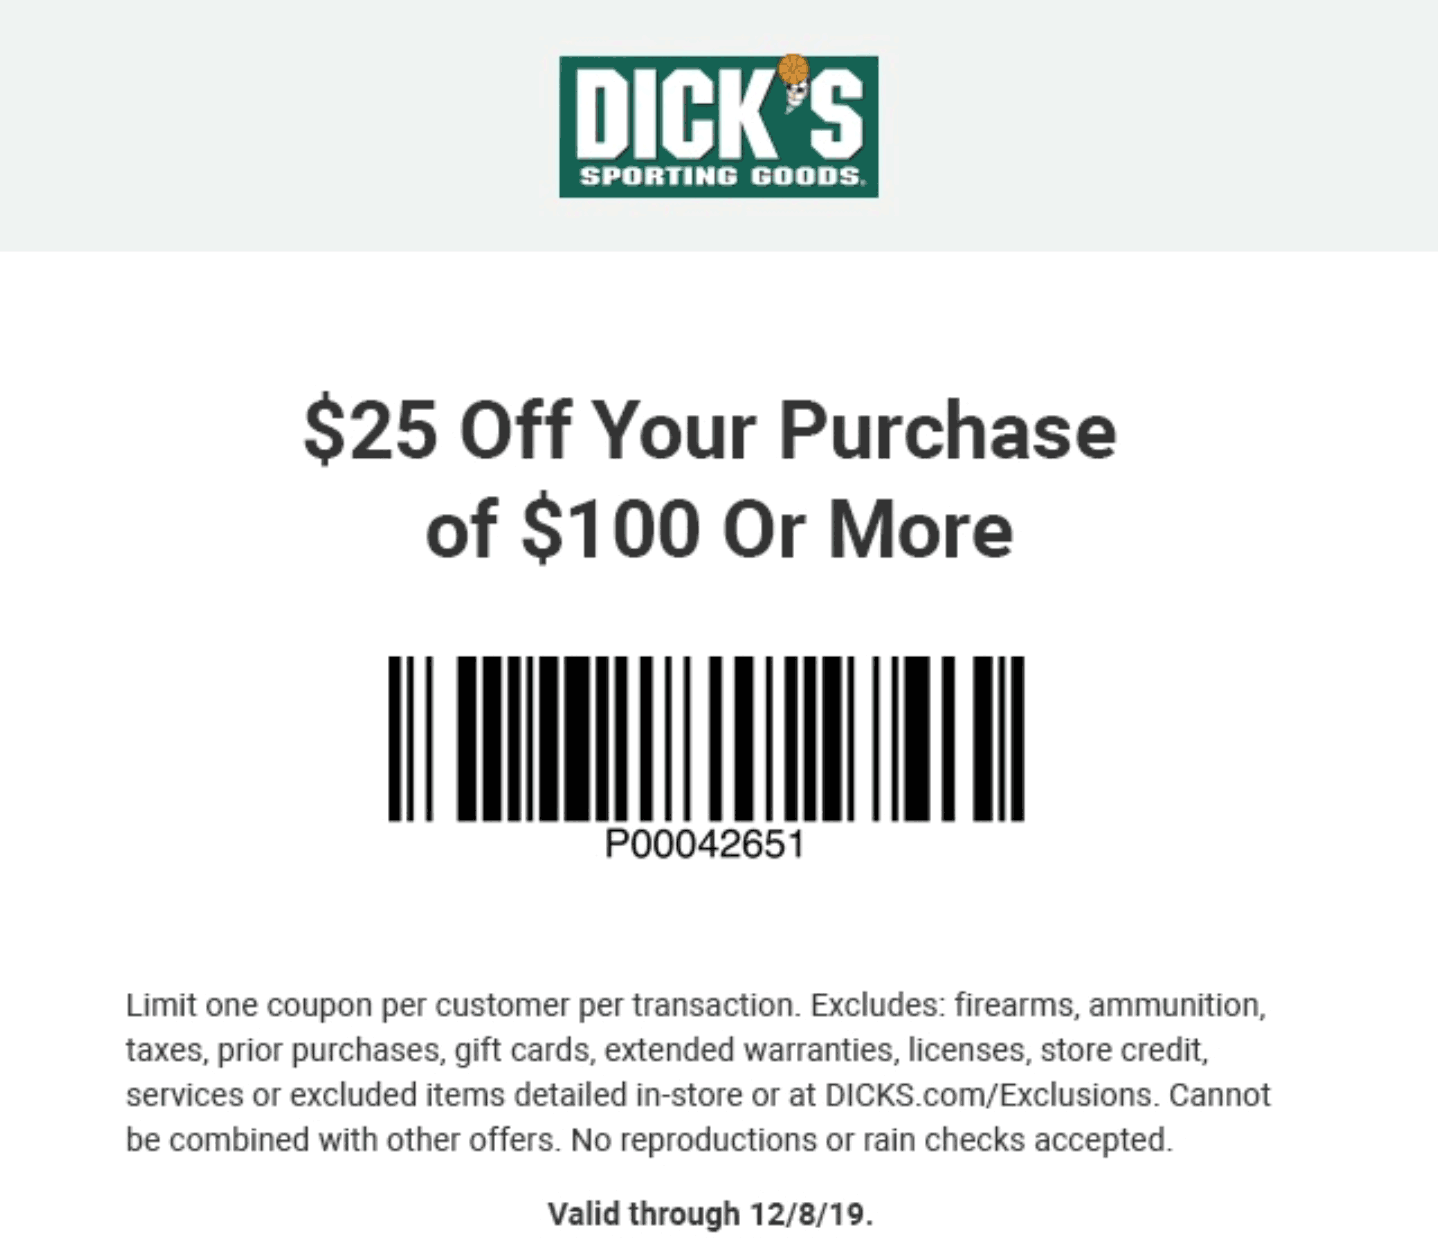 Dicks Coupon January 2020 $25 off $100 at Dicks sporting goods, ditto online